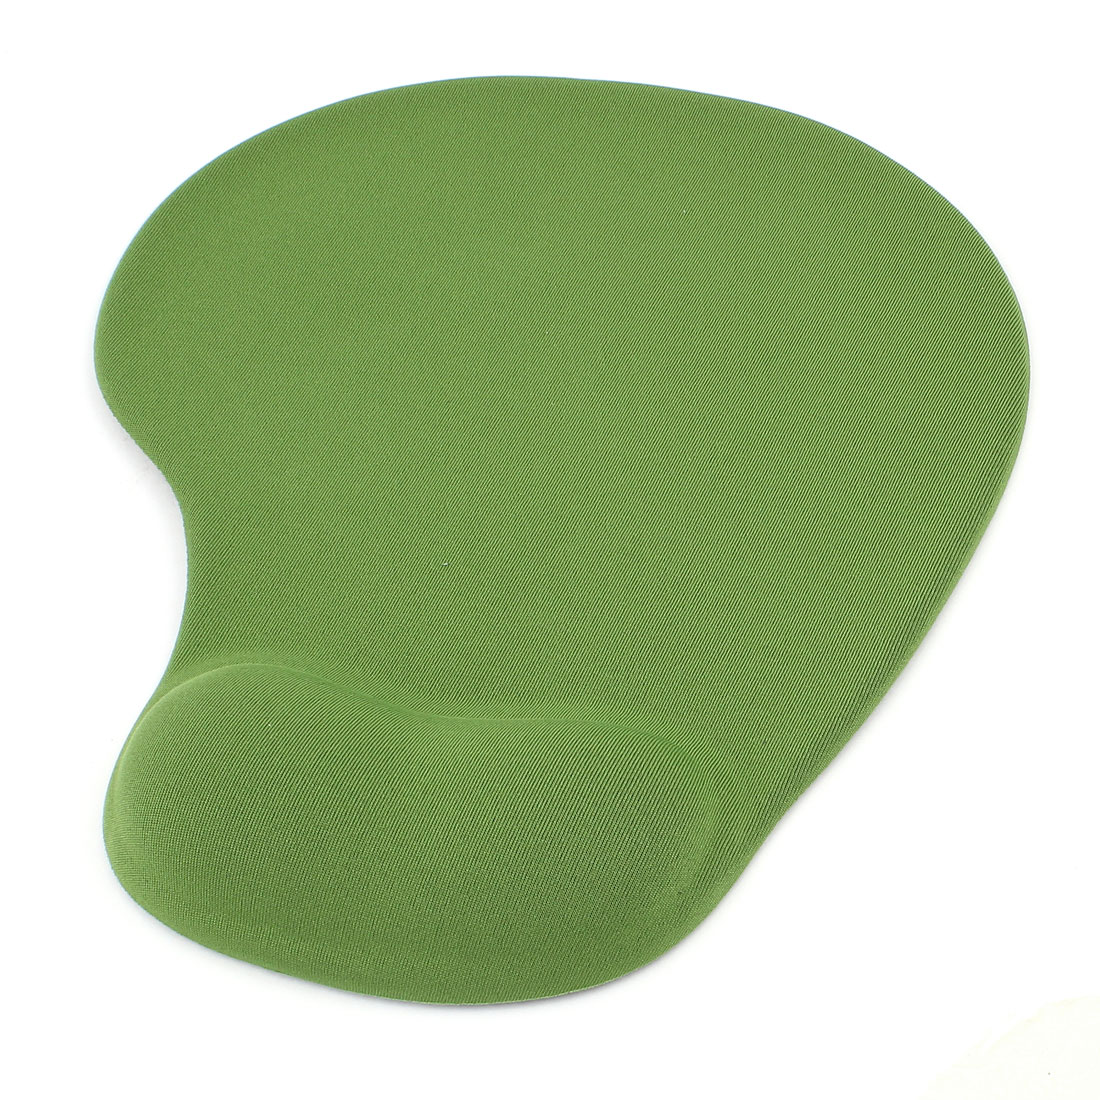 Gel Wrist Rest Support Soft Silicone Mouse Pad Mat Green for PC Notebook Laptop